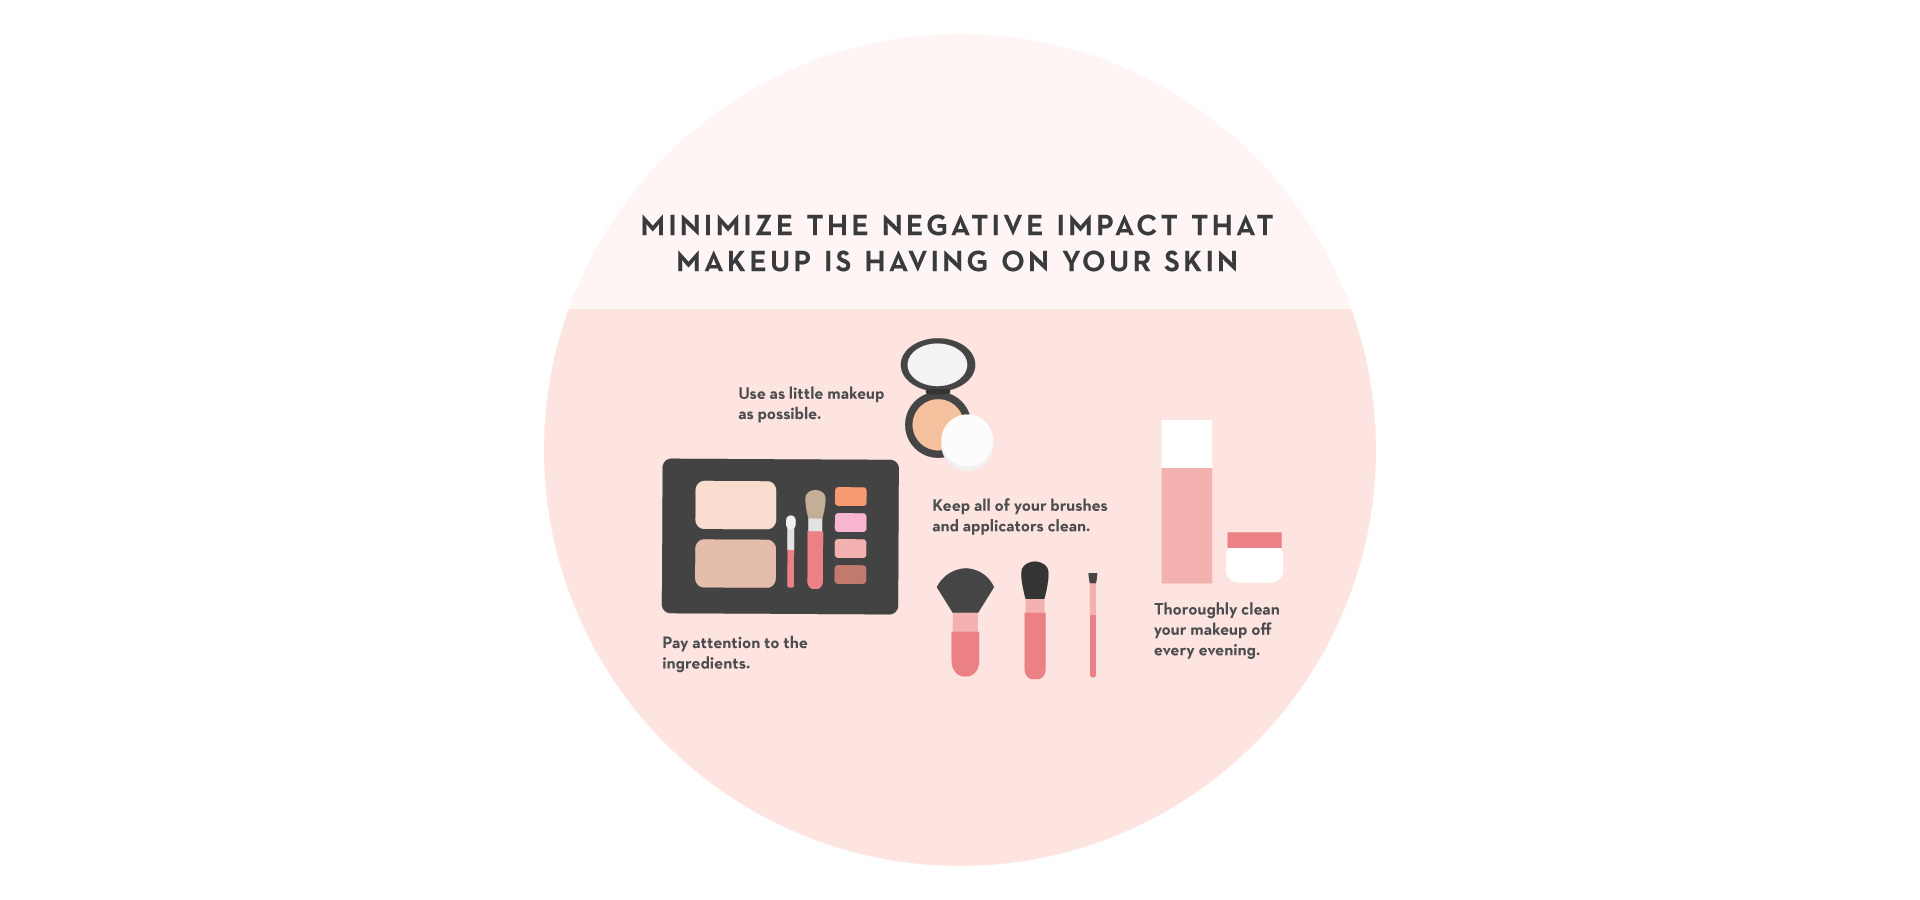 No Makeup Is Going To Be As Good For Your Skin As No Makeup, So Try To Err  On The Side Caution, Whenever Possible Also, Apply